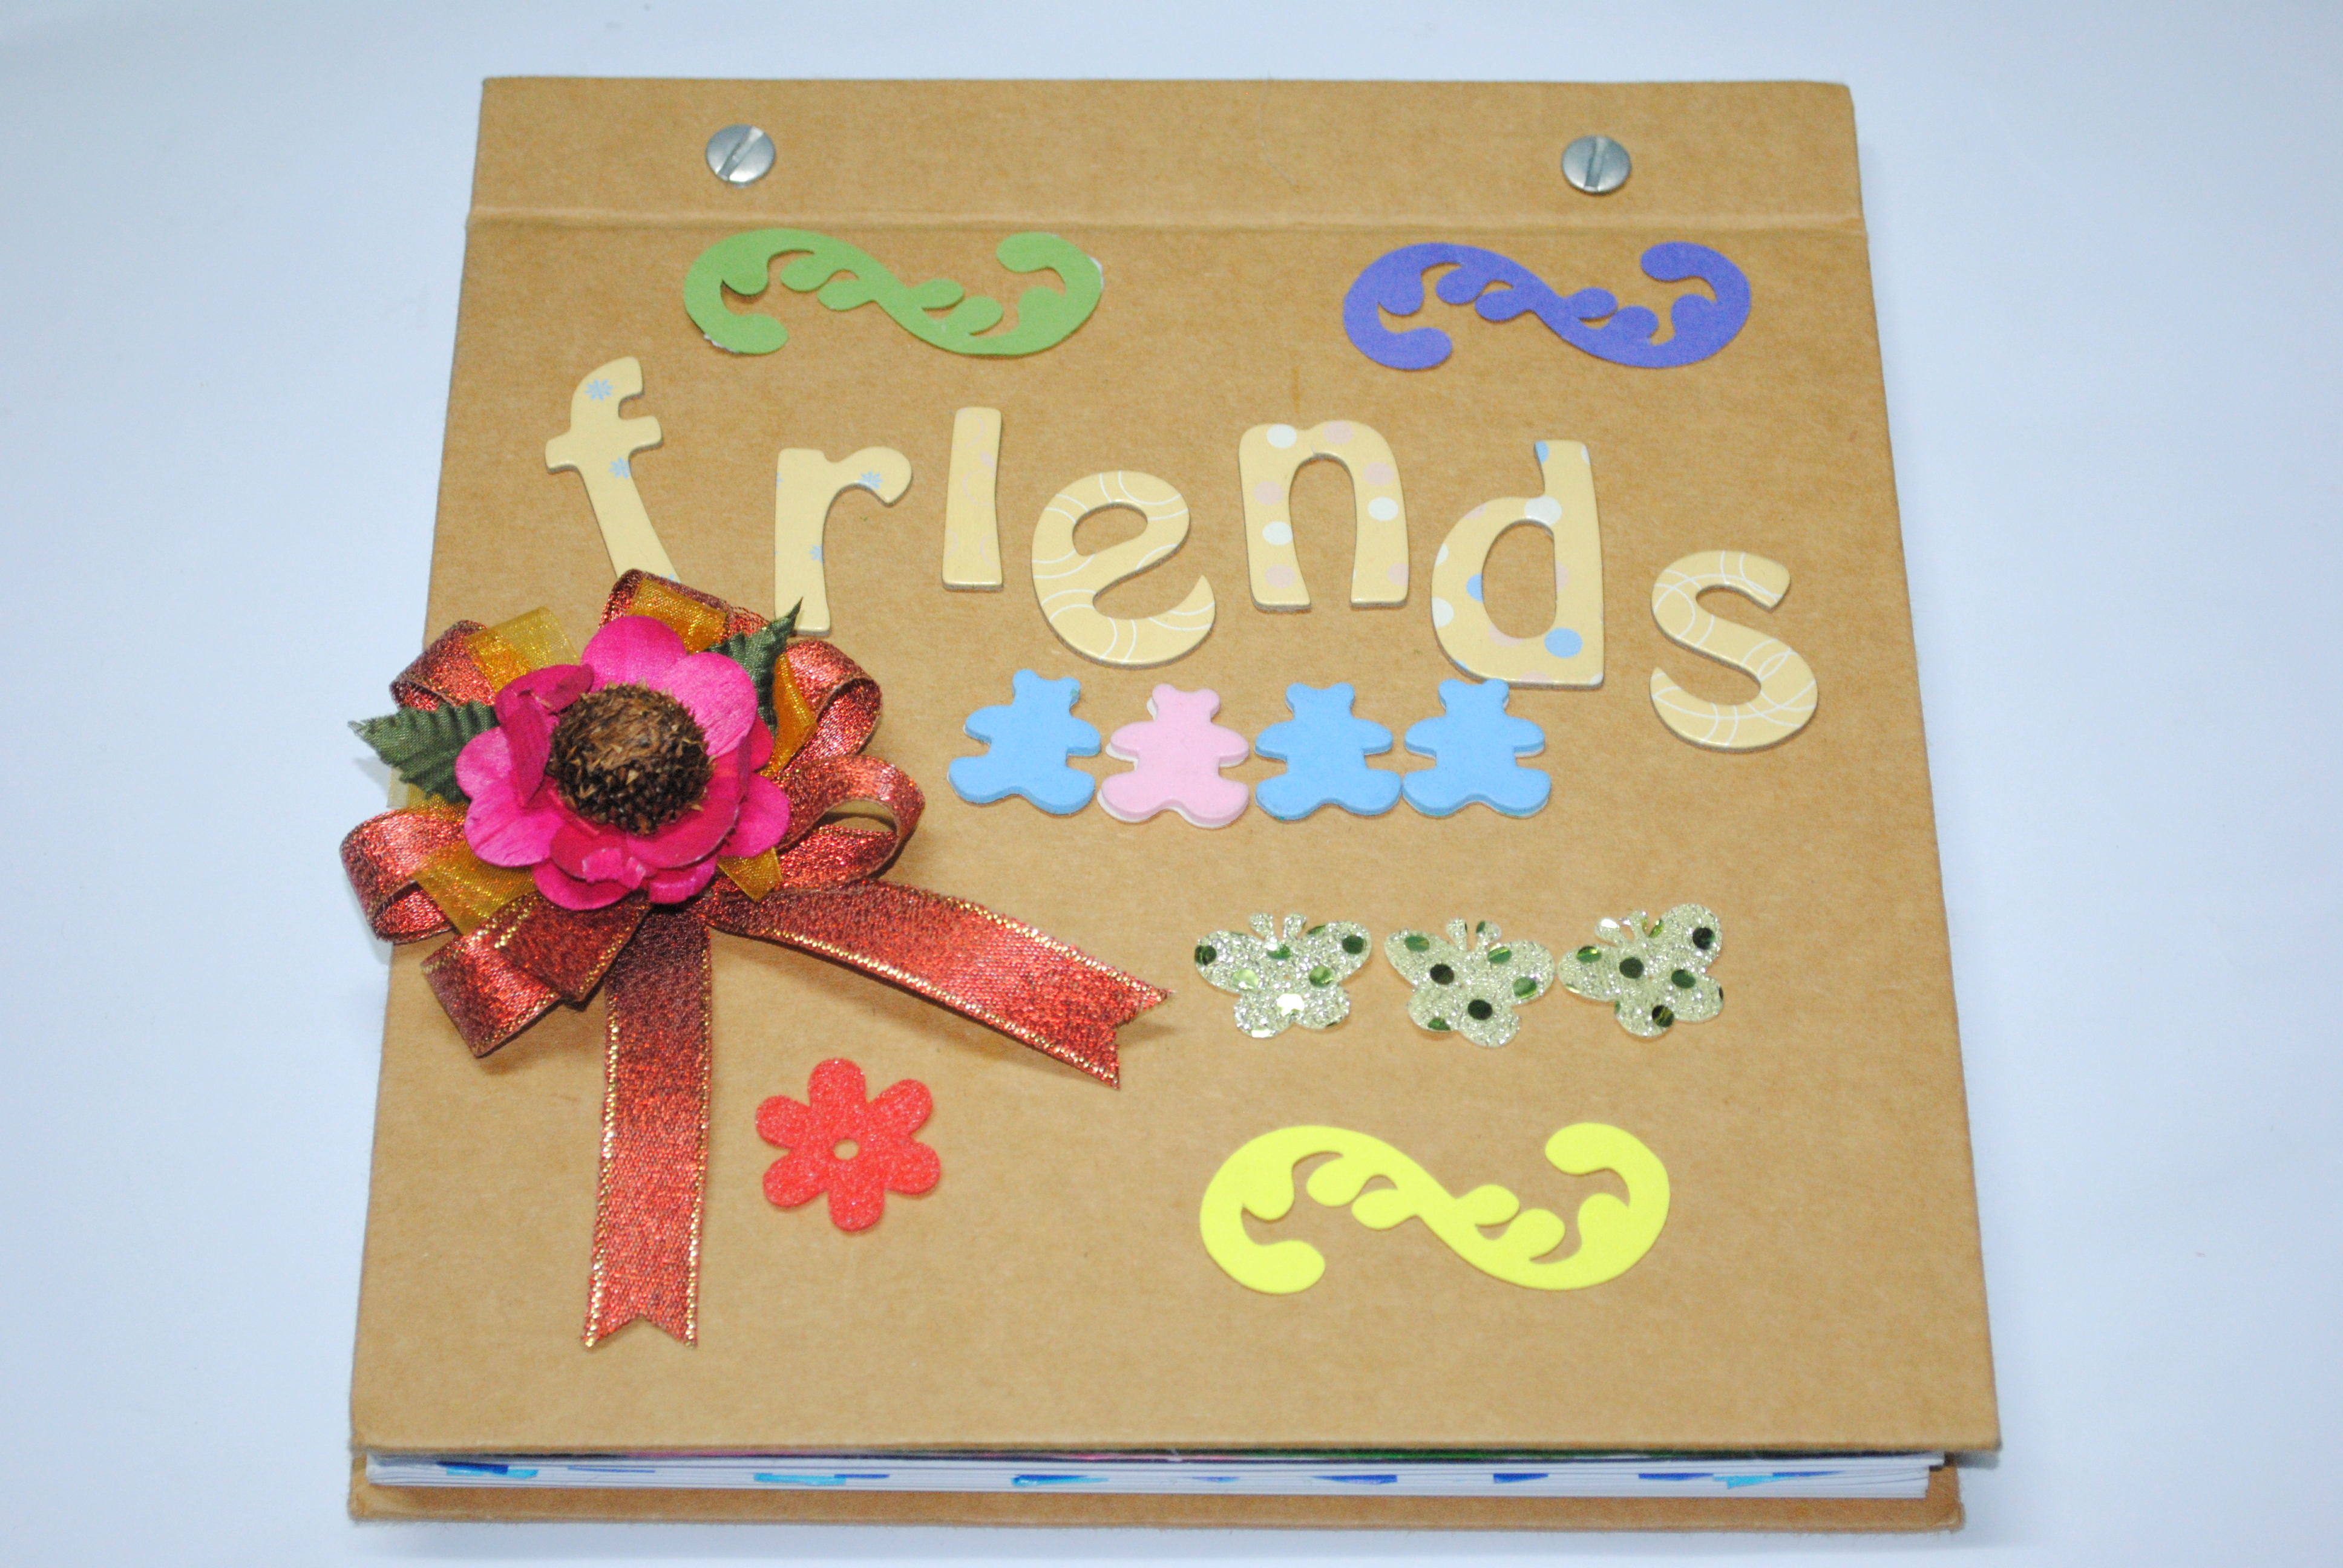 Fotoalbum Gestaltungsideen How To Create A Great Scrapbook With Friends For Girls